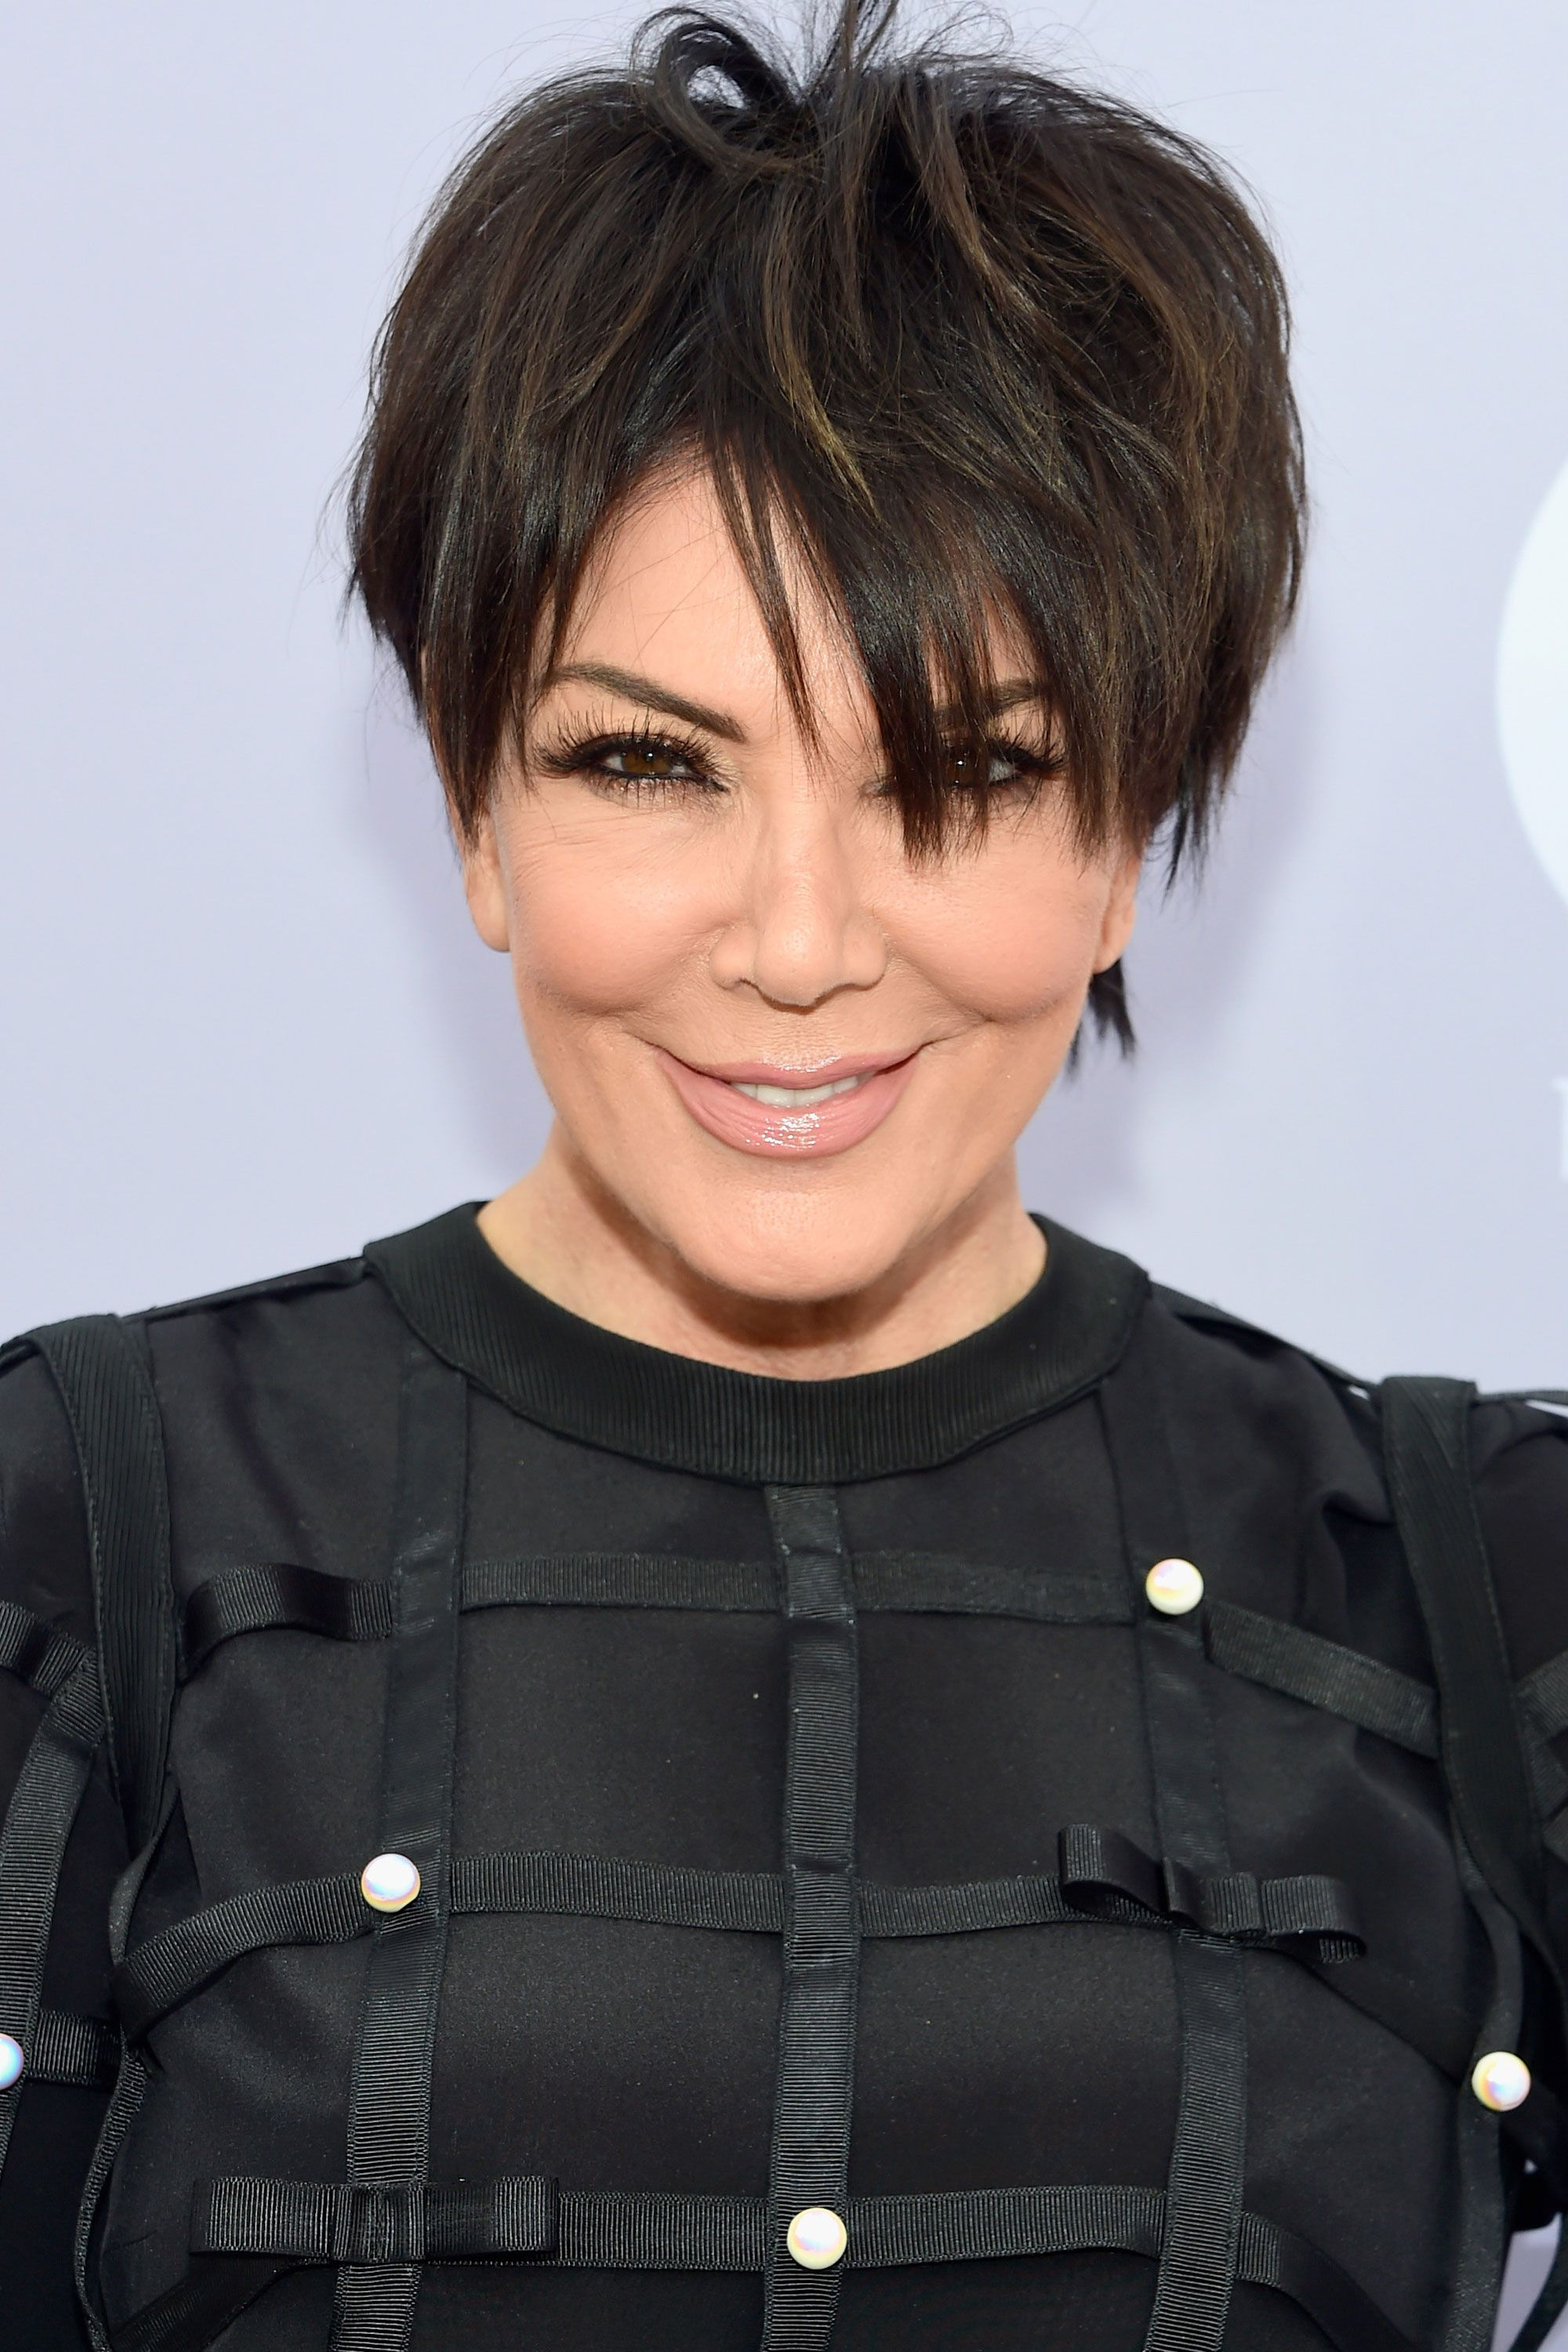 50 Hairstyles That Will Make You Look Younger – Haircut Ideas To For 2017 Kris Jenner Medium Haircuts (View 5 of 20)